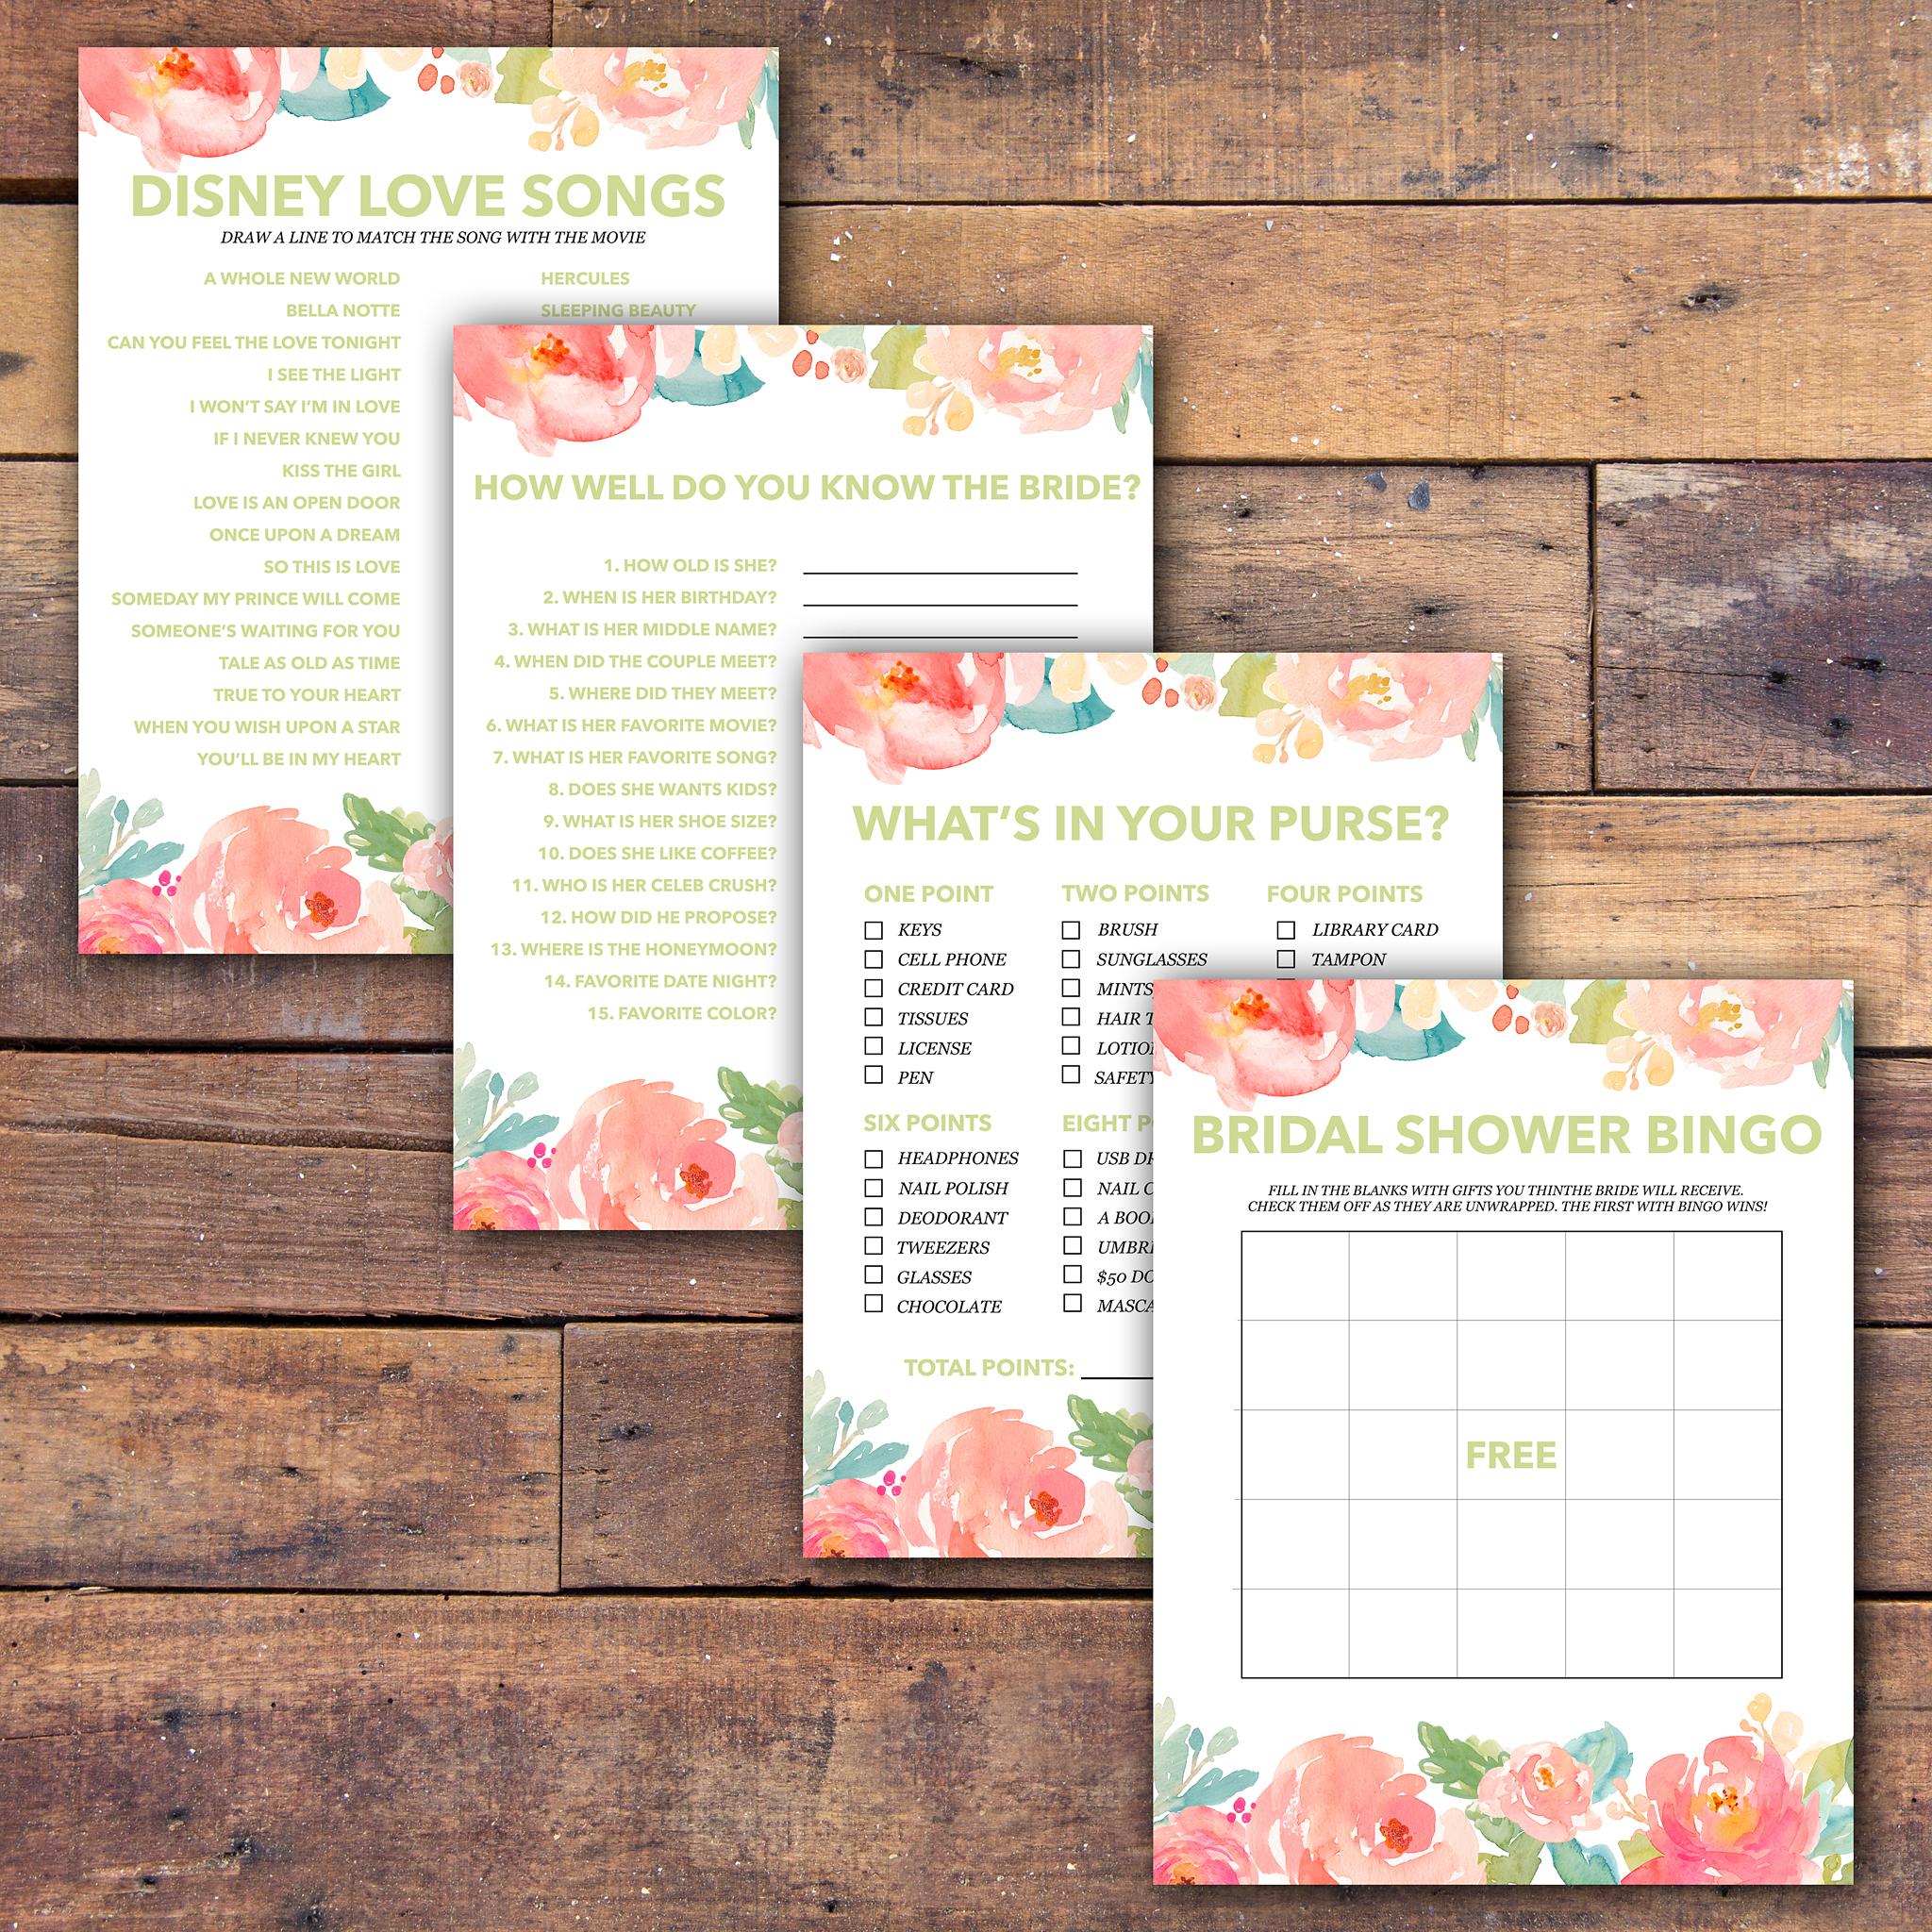 Bridal Shower Games Free Printable - - Samantha Jean Photograhy - Free Printable Bridal Shower Games What's In Your Purse